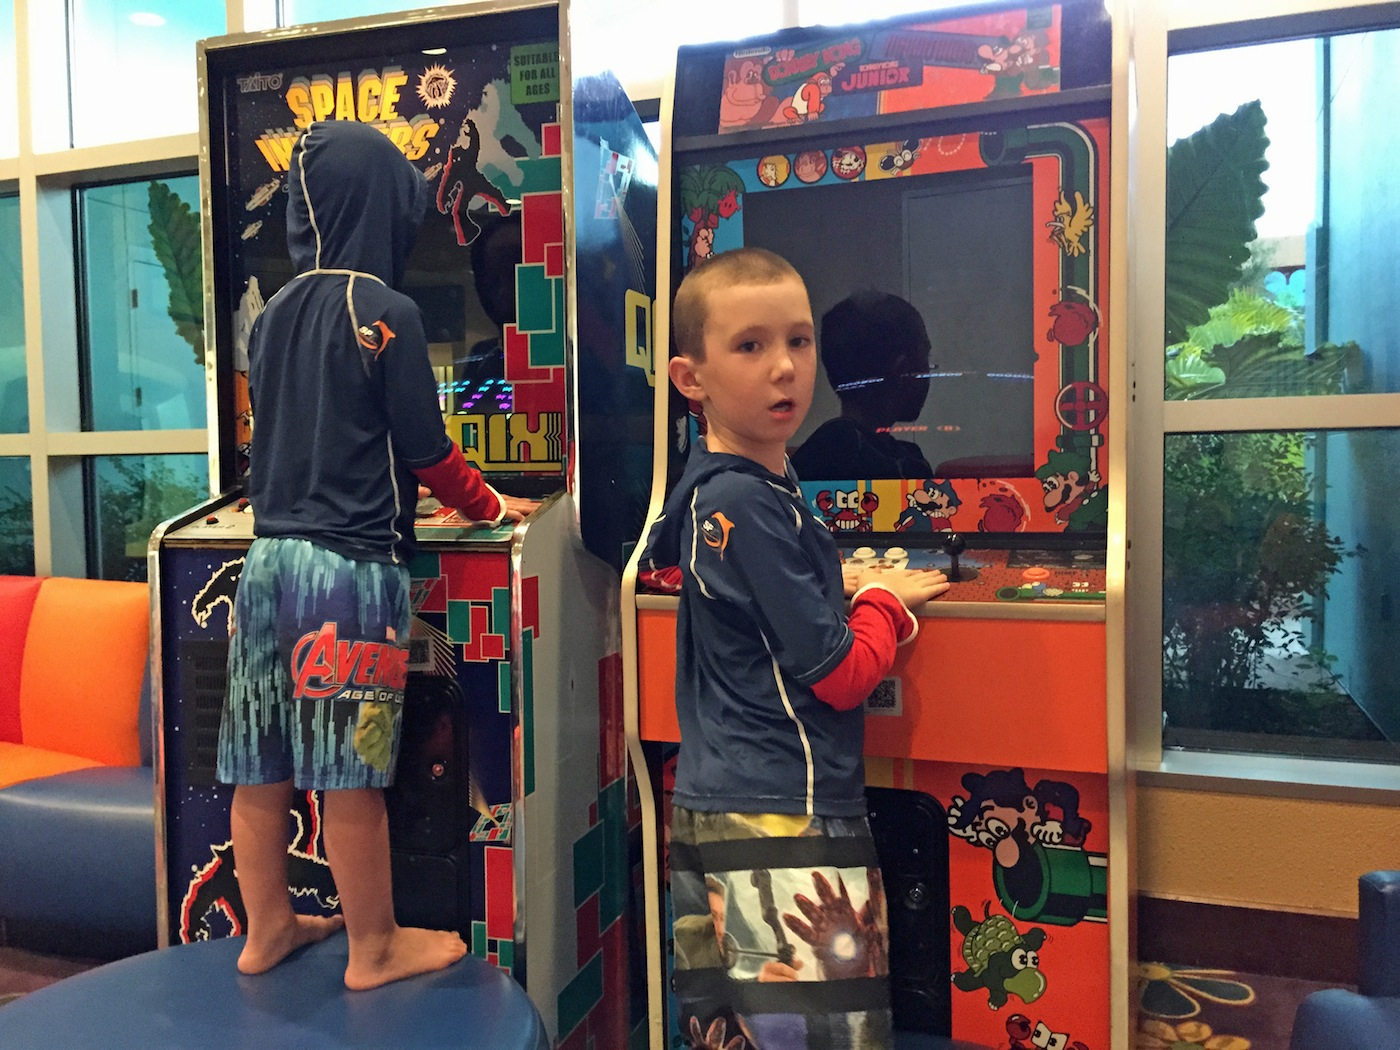 Free Arcade Games at Pop century lobby